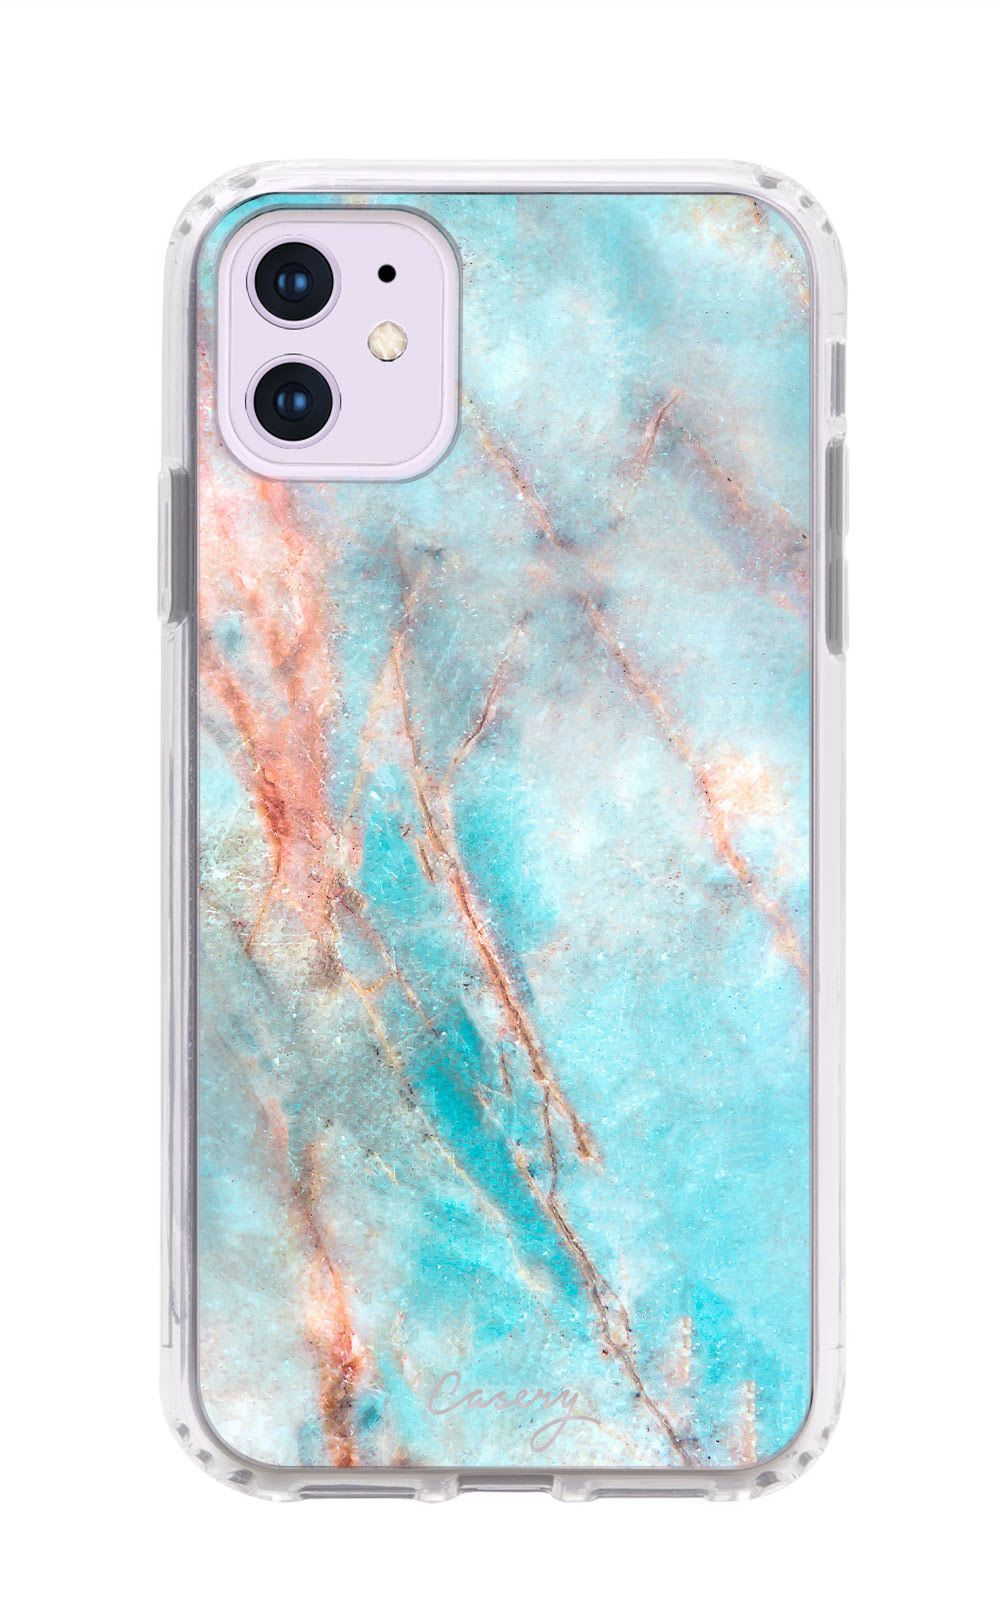 Cheap Aesthetic Iphone 7 Cases